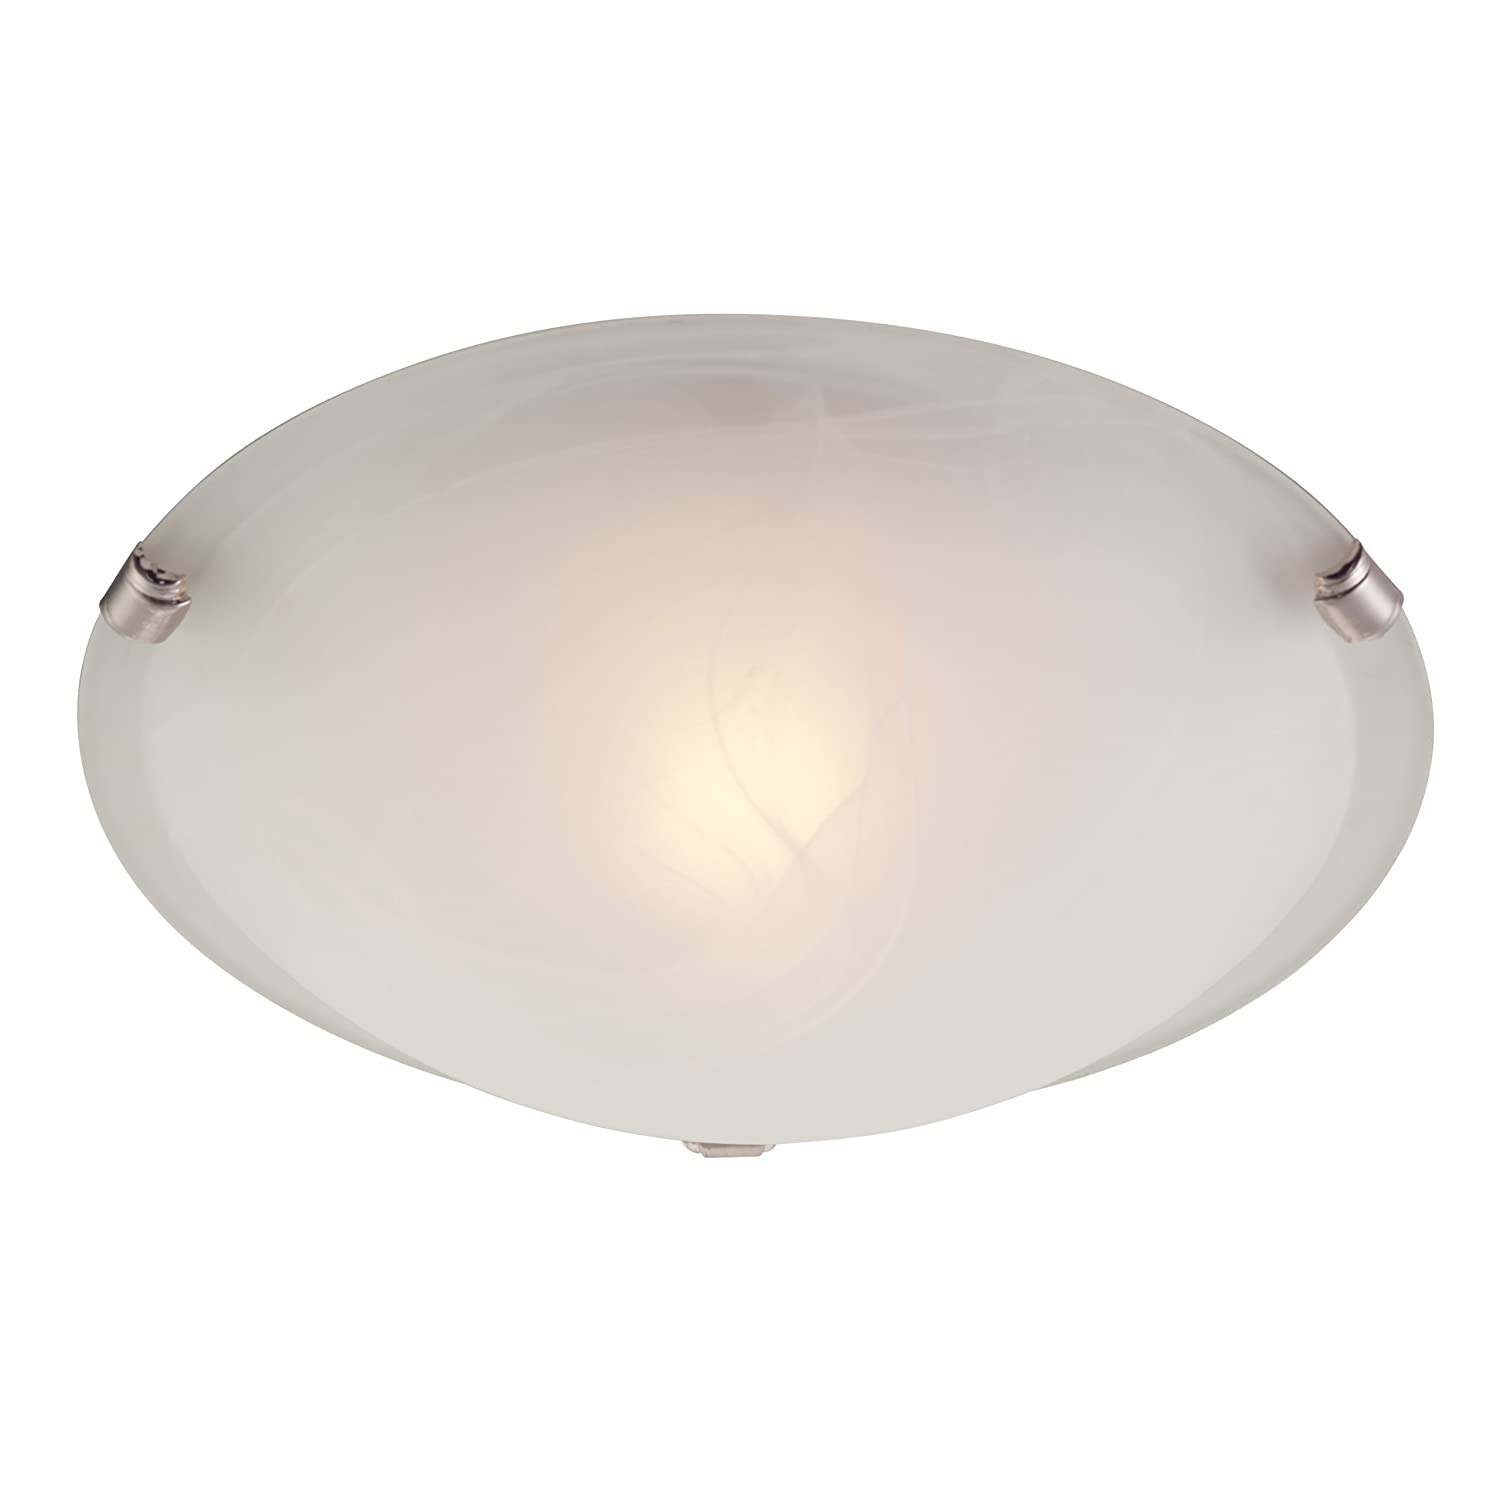 Westinghouse 6629700 One Light Interior Flush Mount Ceiling Fixture, White  And Brushed Nickel Finish With White Alabaster Glass   Ceiling Pendant  Fixtures ...